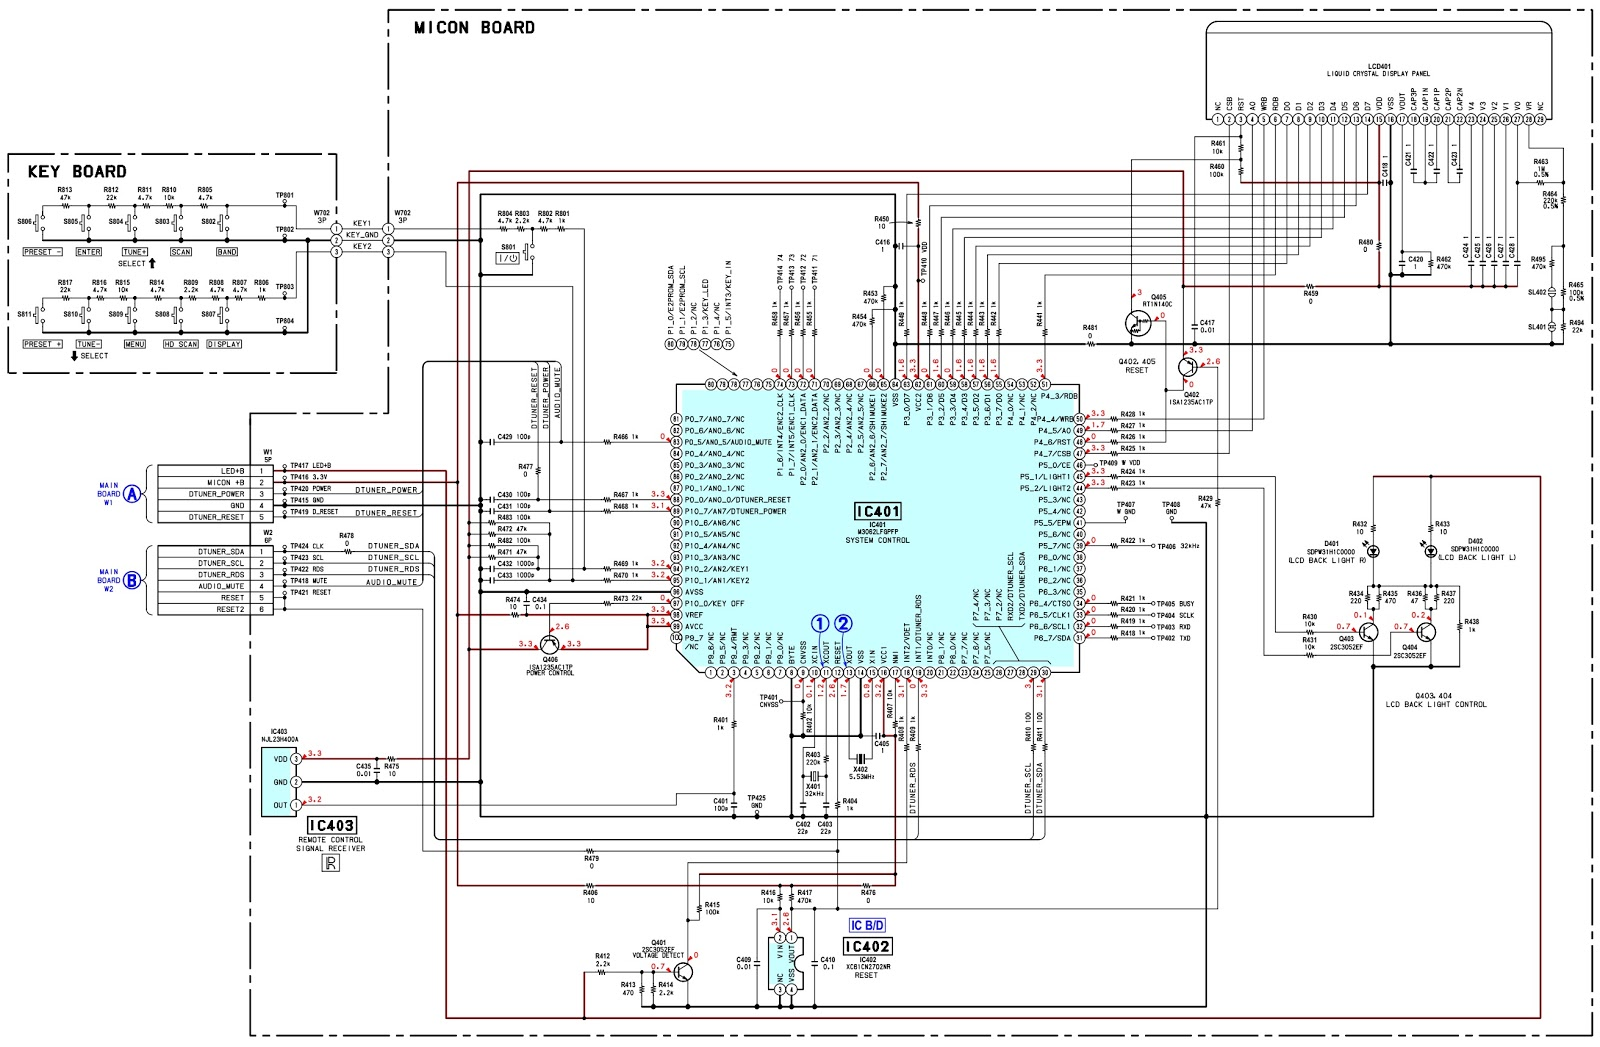 Cessna 150 Engine Diagram Cessna Electrical Wiring Diagrams – Cessna 172 Wiring Diagram